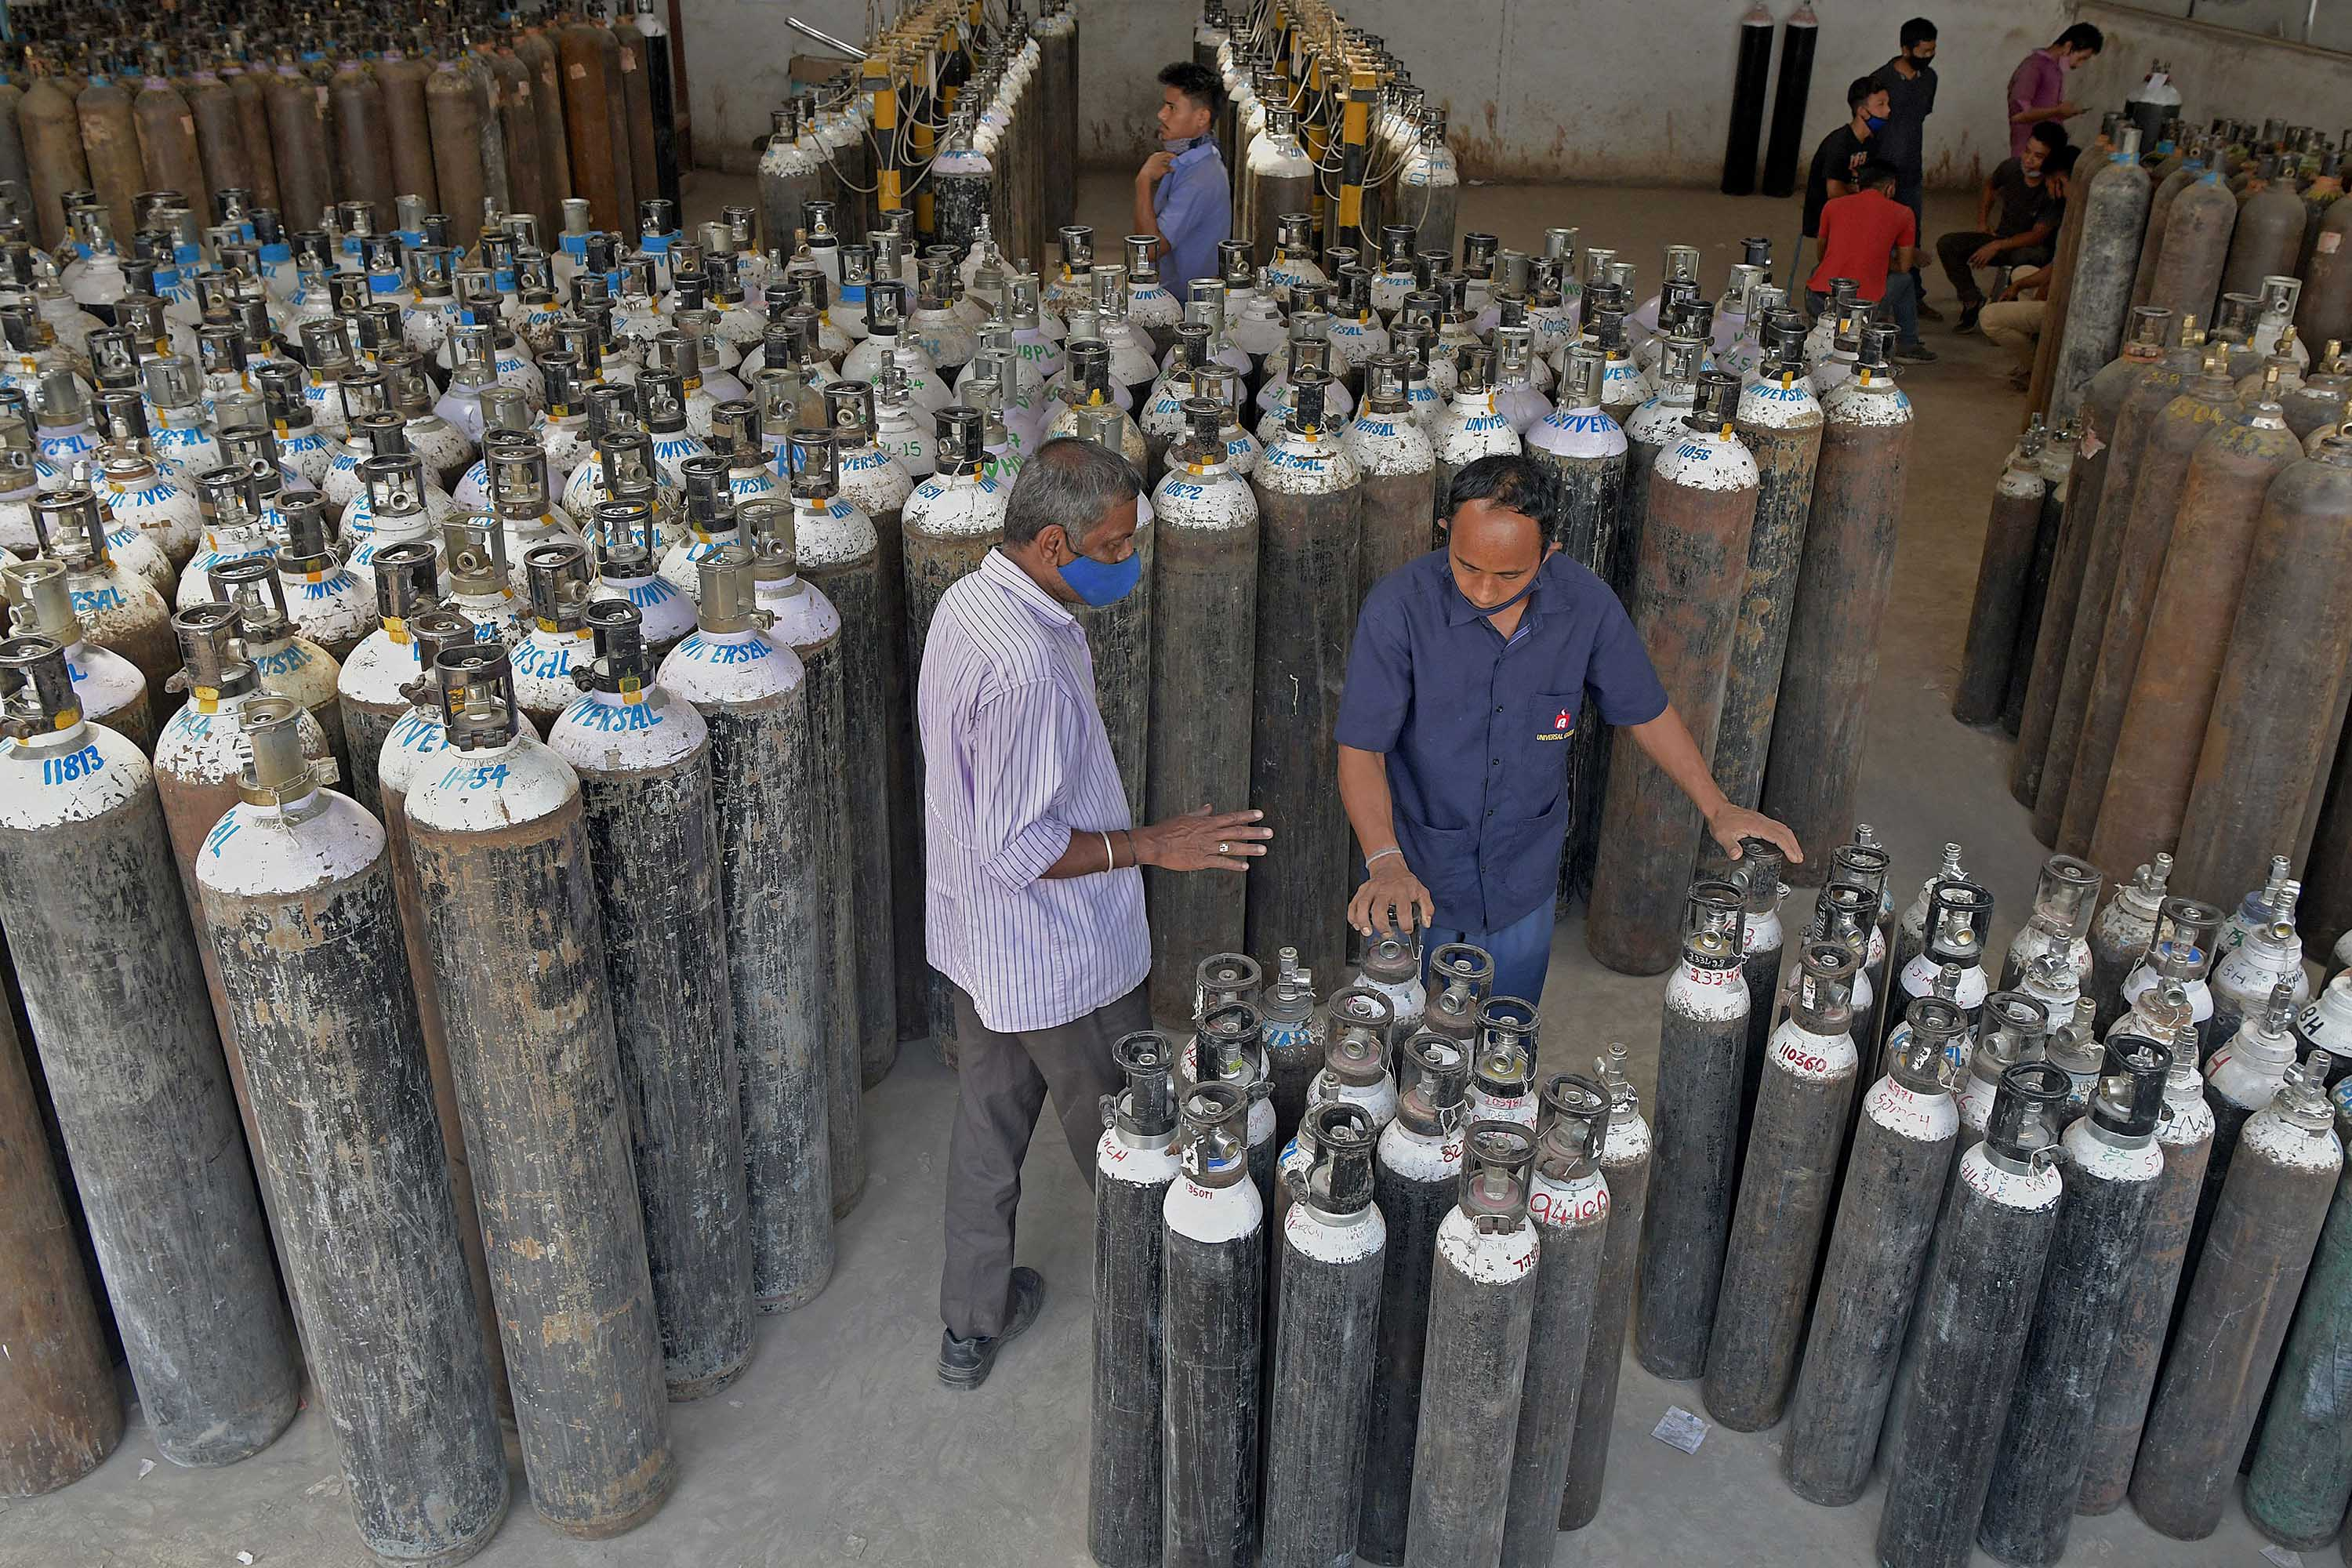 Workers are seen sorting oxygen cylinders for distribution to hospitals in Bangalore, India, on April 19, where they will be used to treat Covid-19 patients.